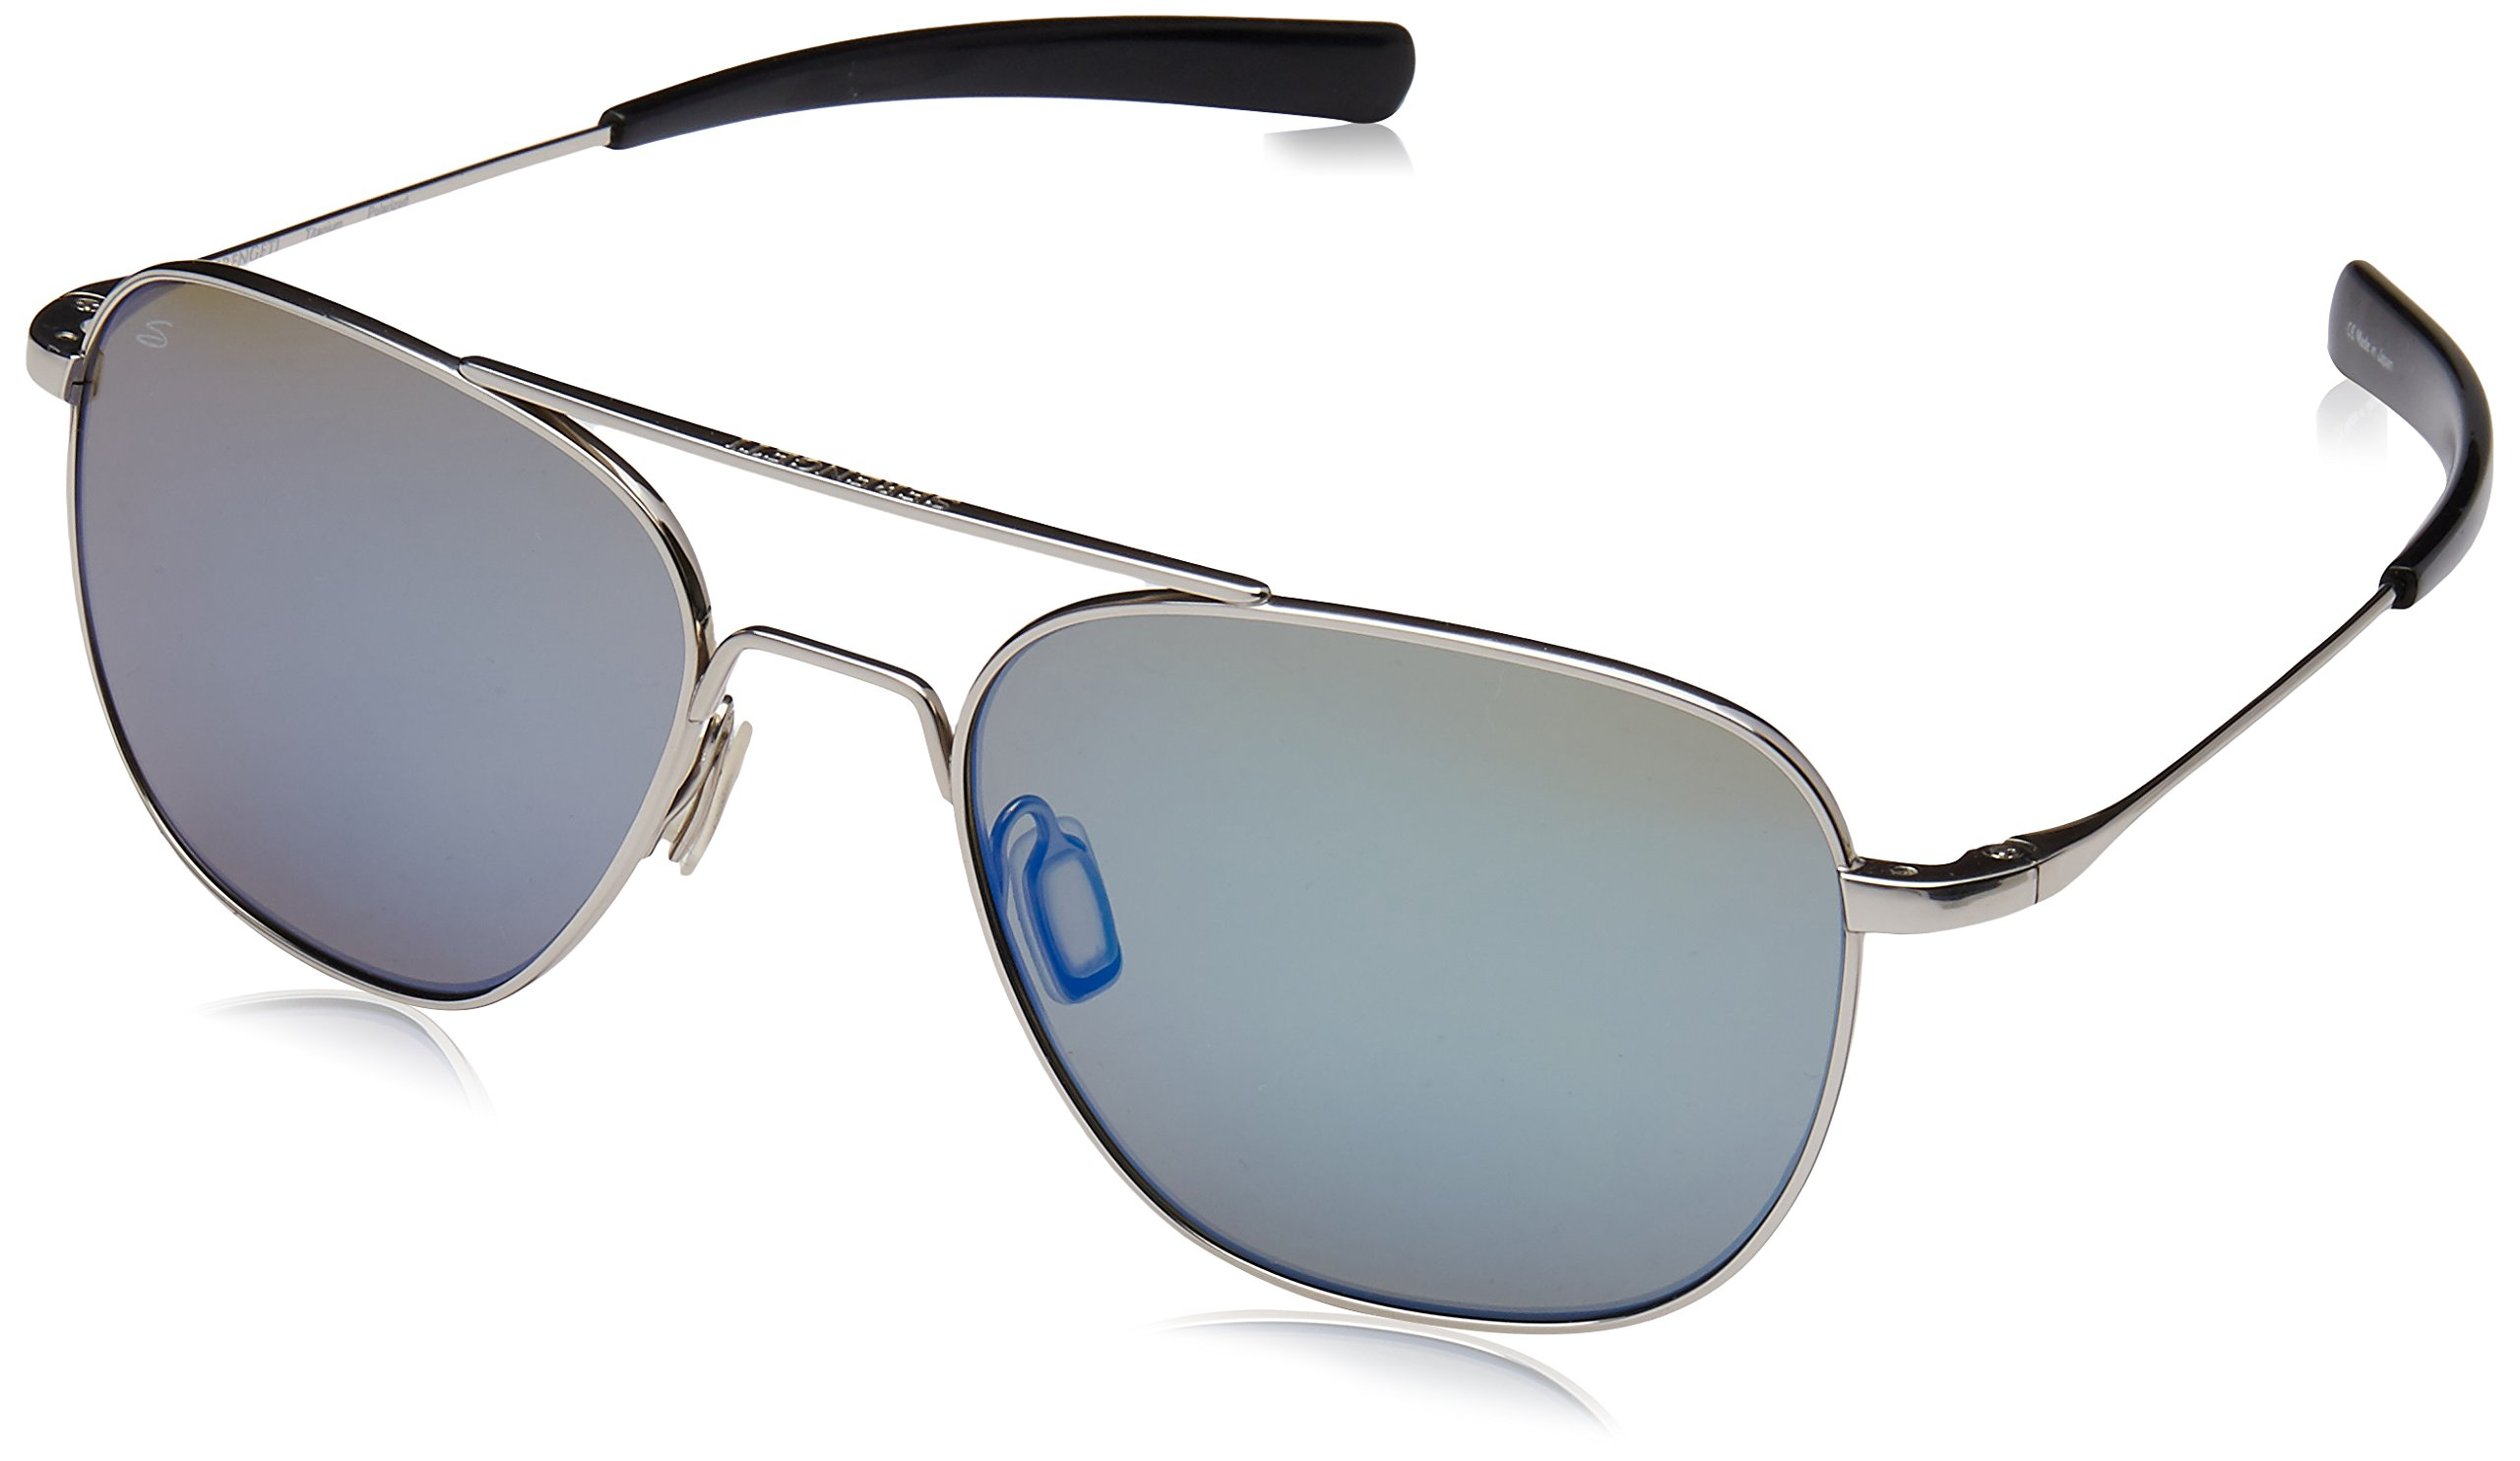 Serengeti 8282 Sortie Sunglass, Shiny Silver Frame, Polarized 555nm Blue Lens by Serengeti